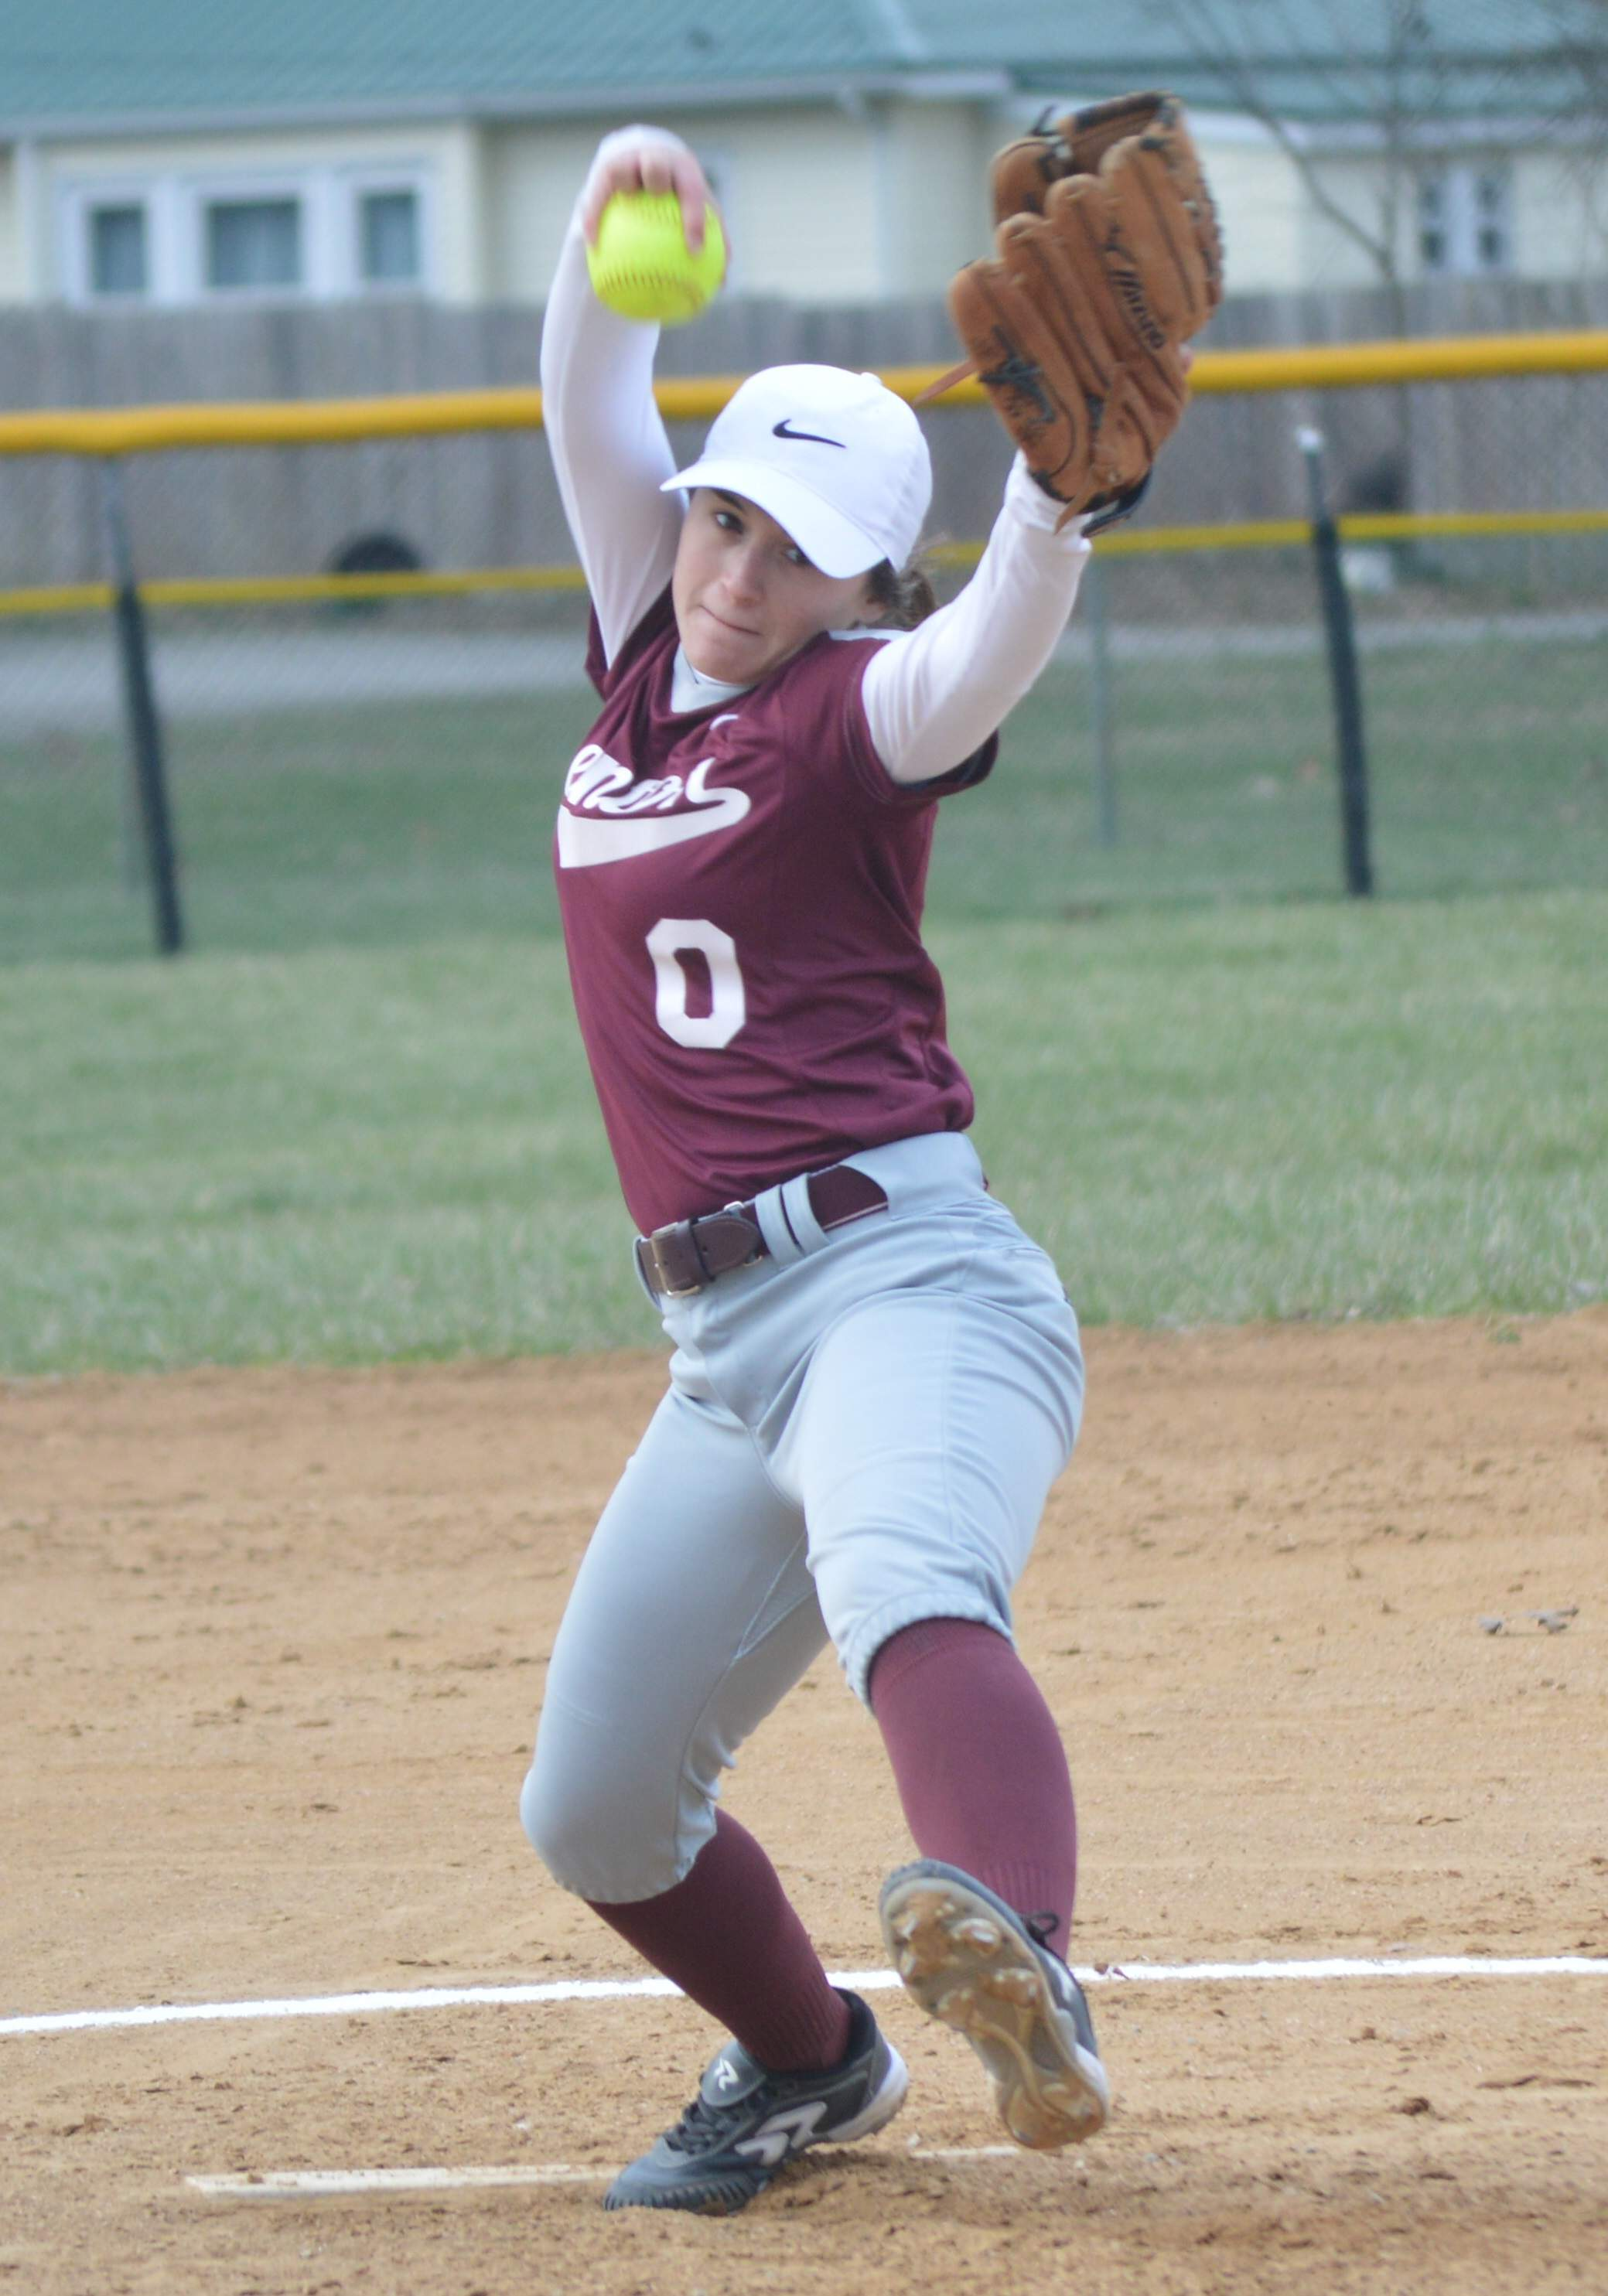 Starting pitcher Eb Casey winds up to deliver a pitch Thursday during the Rangerettes' season opening game against the Salem Wildcats.